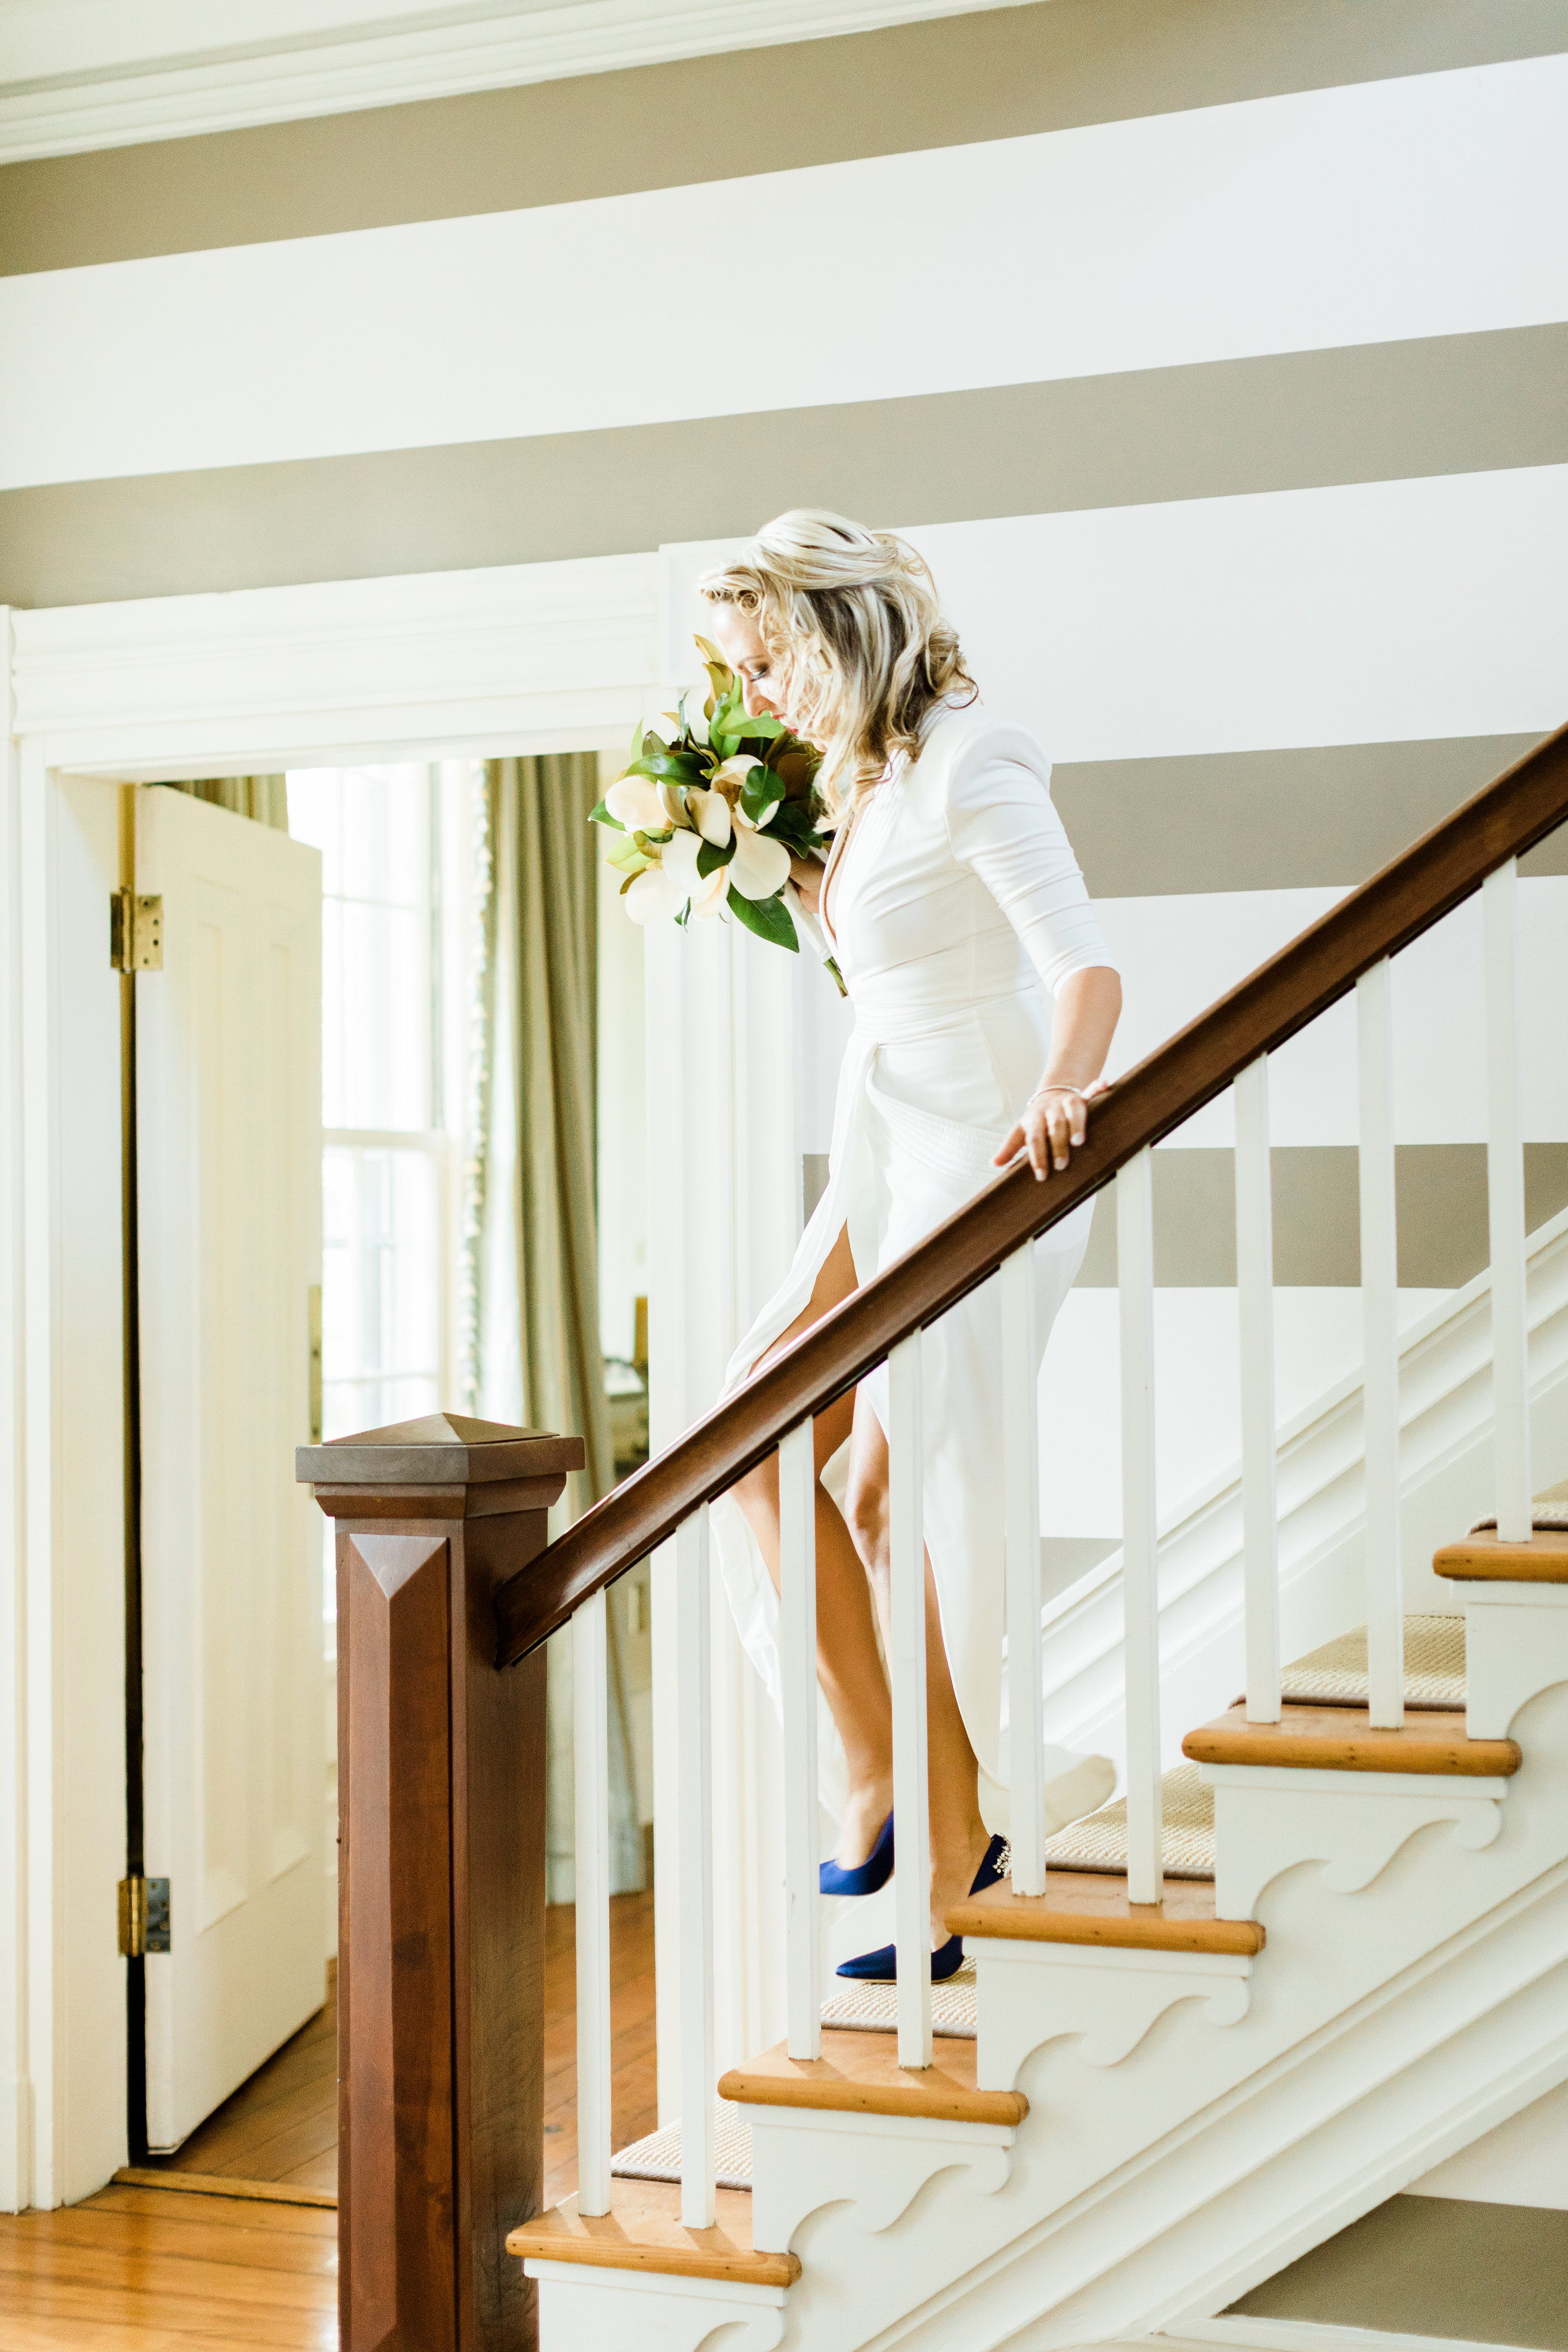 View More: http://samanthamoorephotography.pass.us/nicolearthurwed